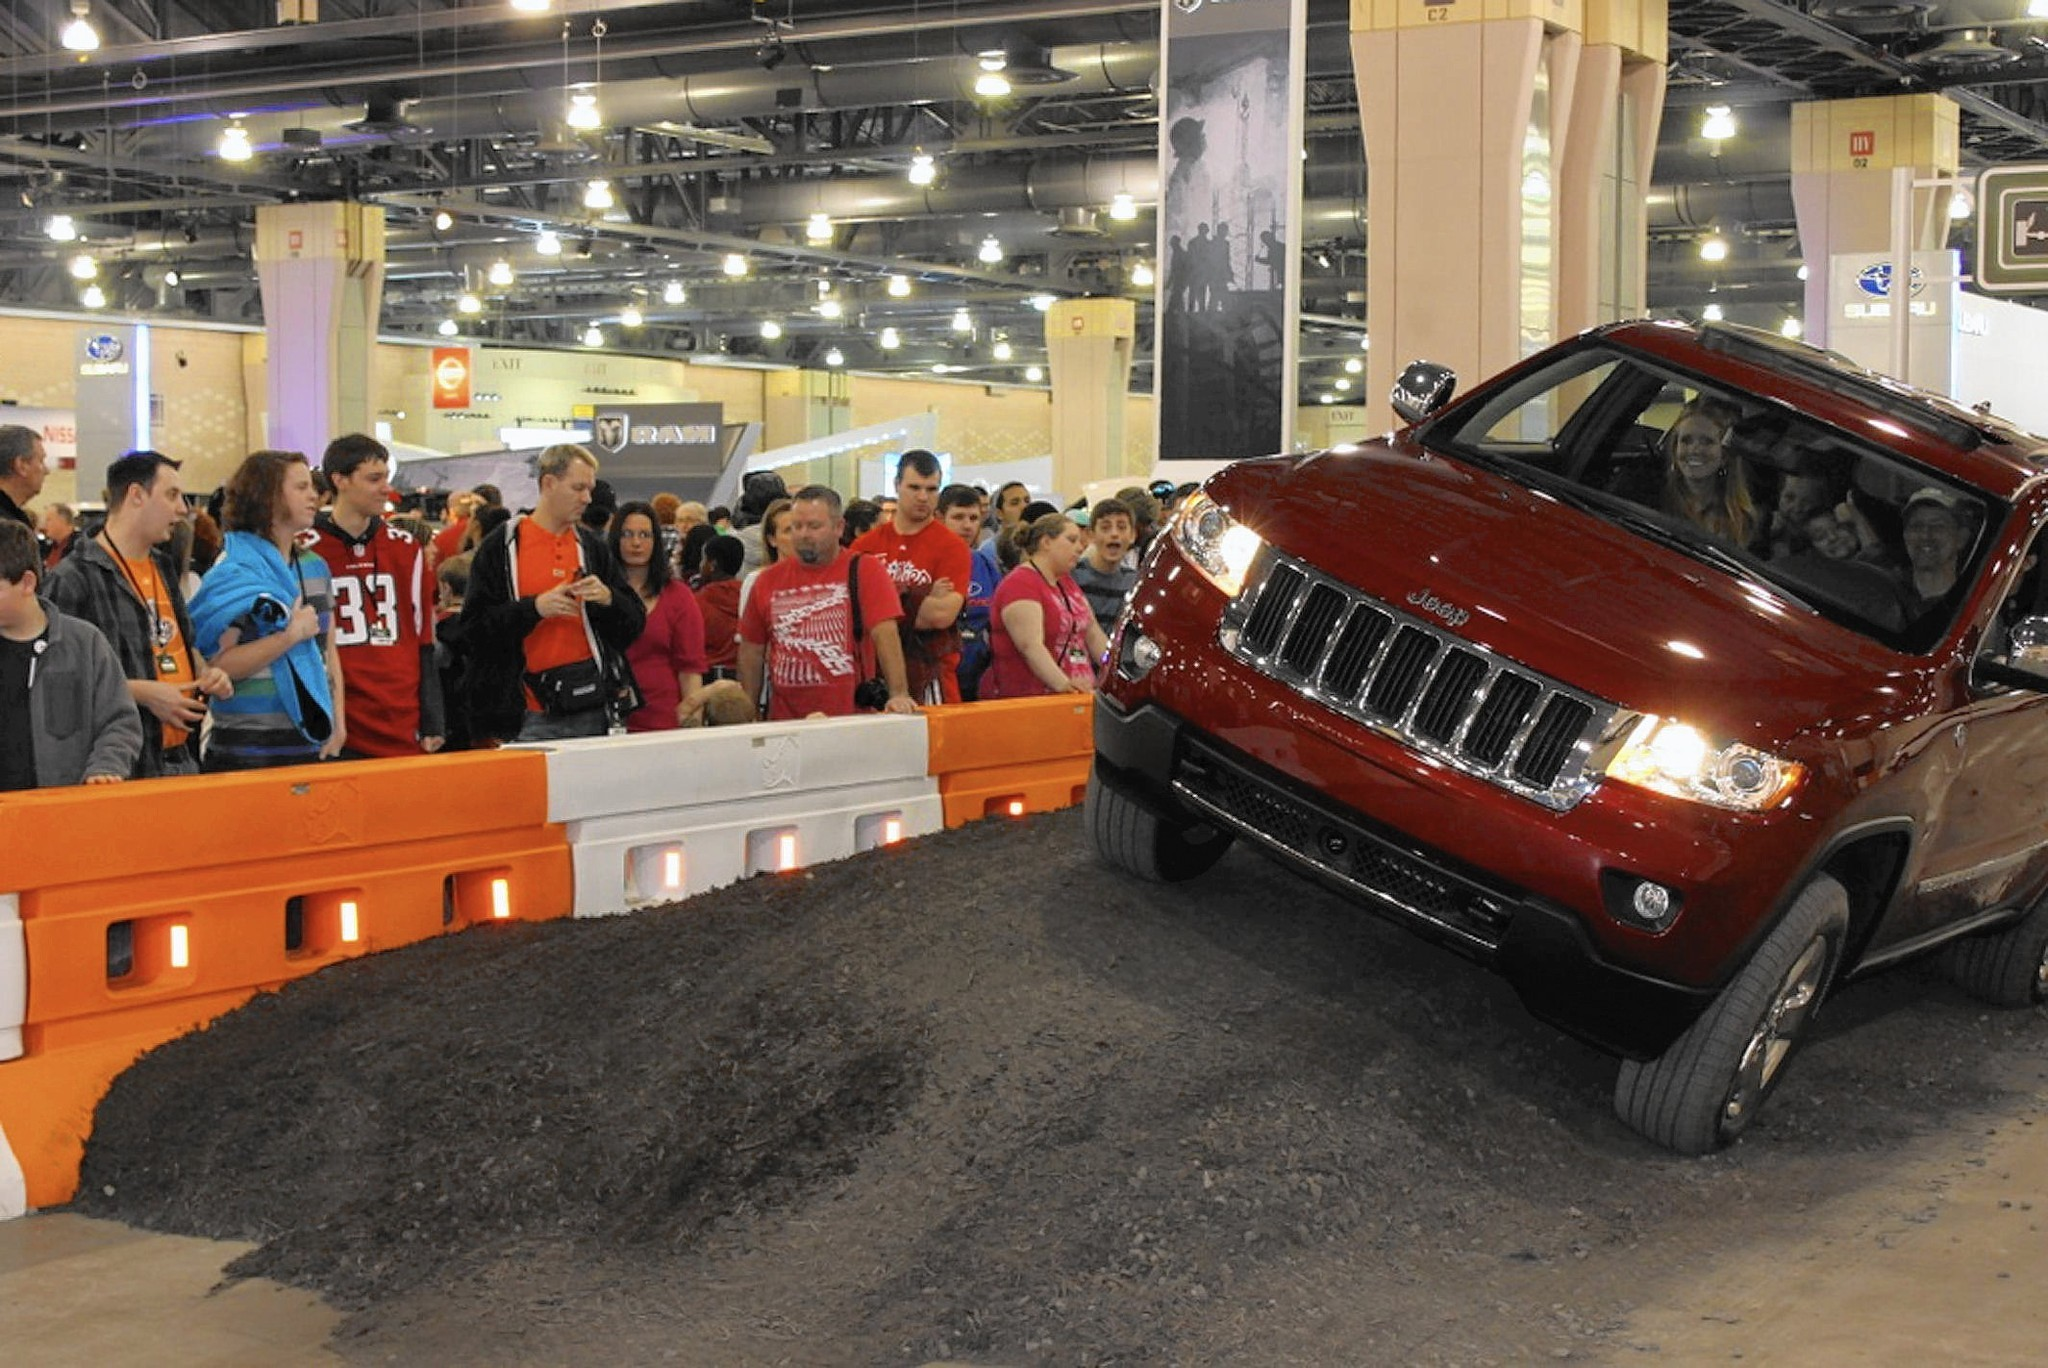 Gear Up For Final Days Of Philadelphia Auto Show The Morning Call